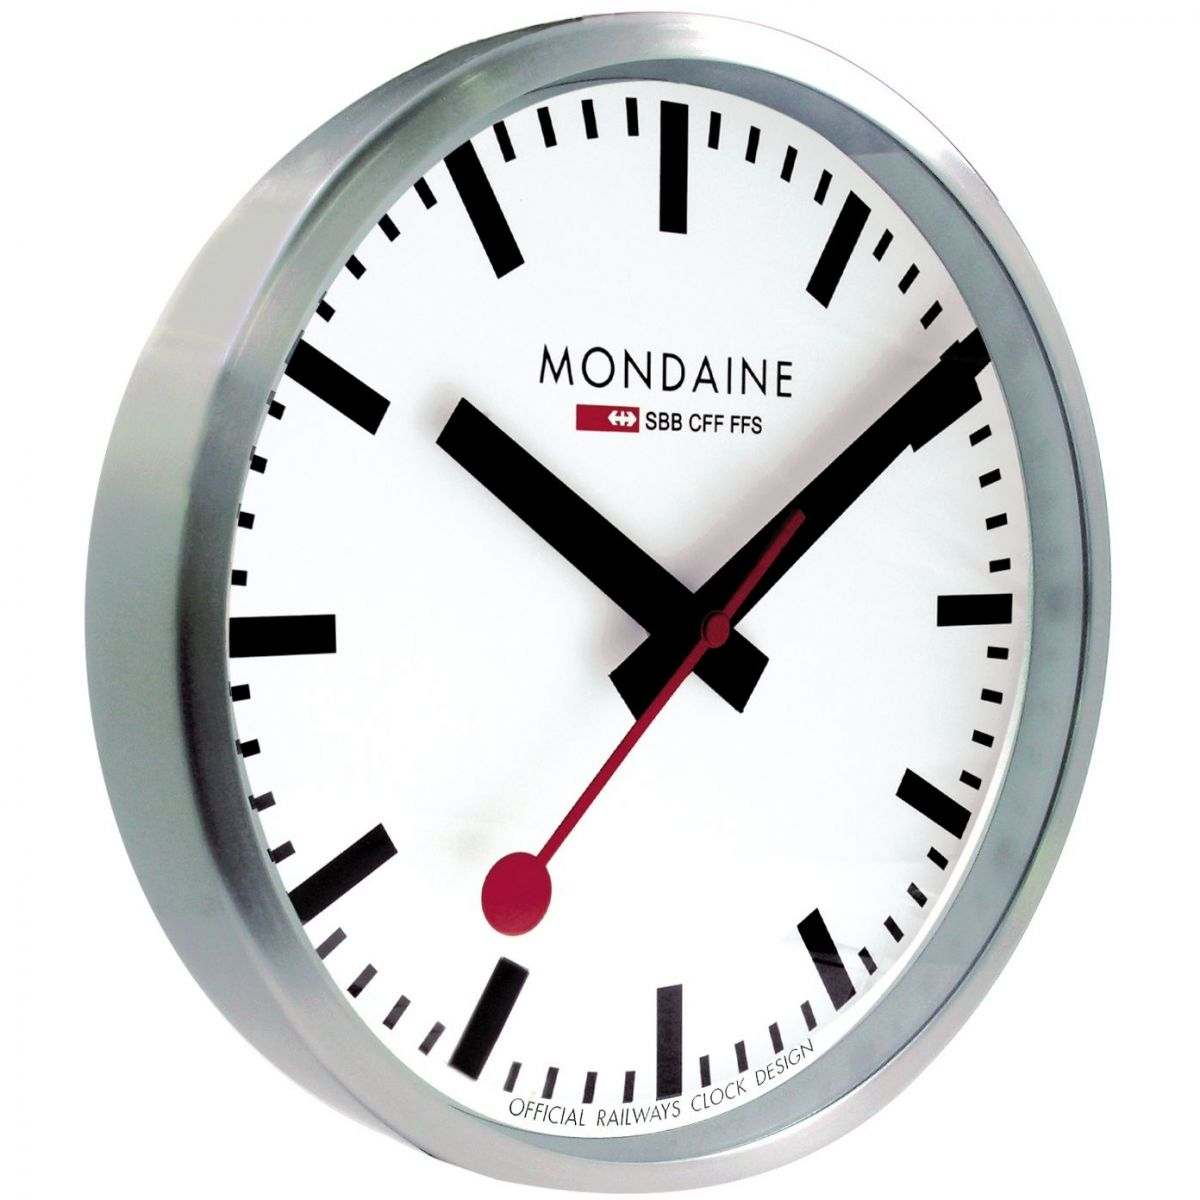 Clock mondaine swiss railways wall clock watch a990 - Swiss railway wall clock ...